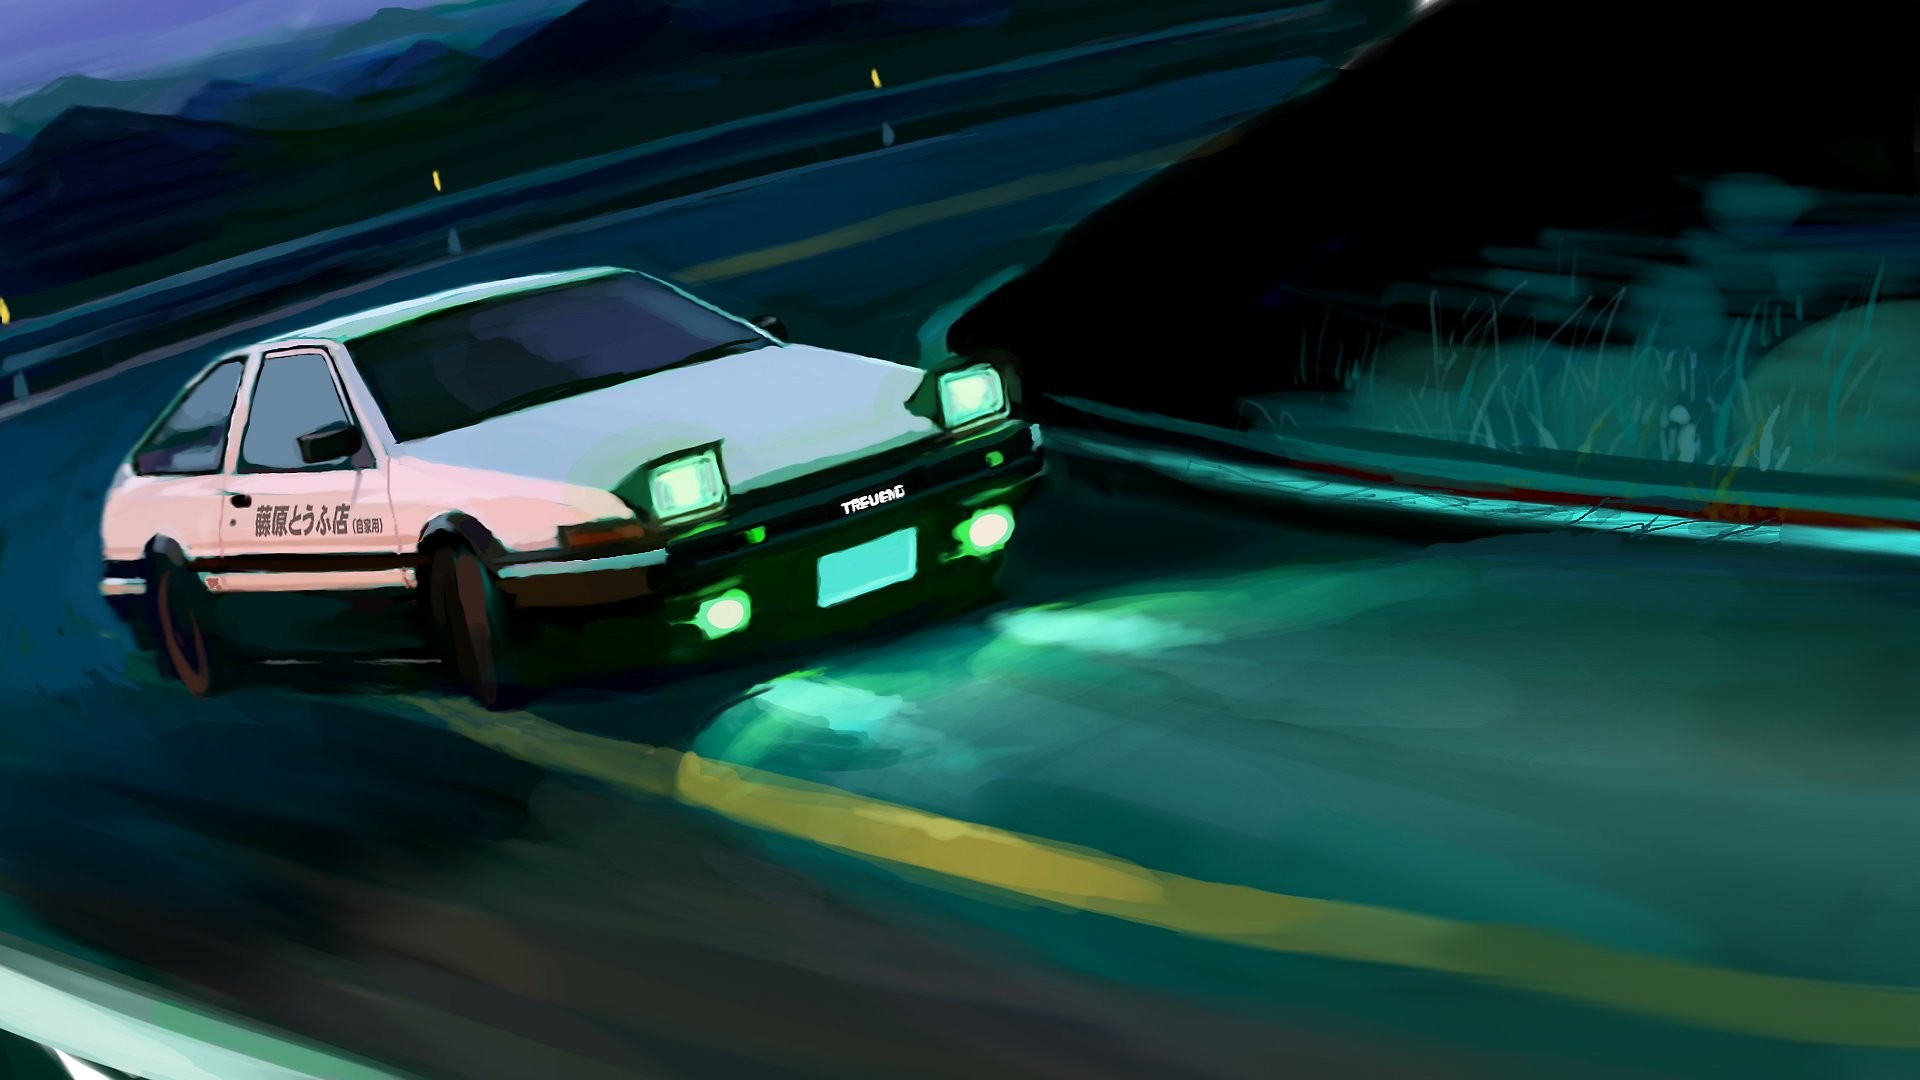 Wallpapers initial d 68 background pictures - Ae86 initial d wallpaper ...